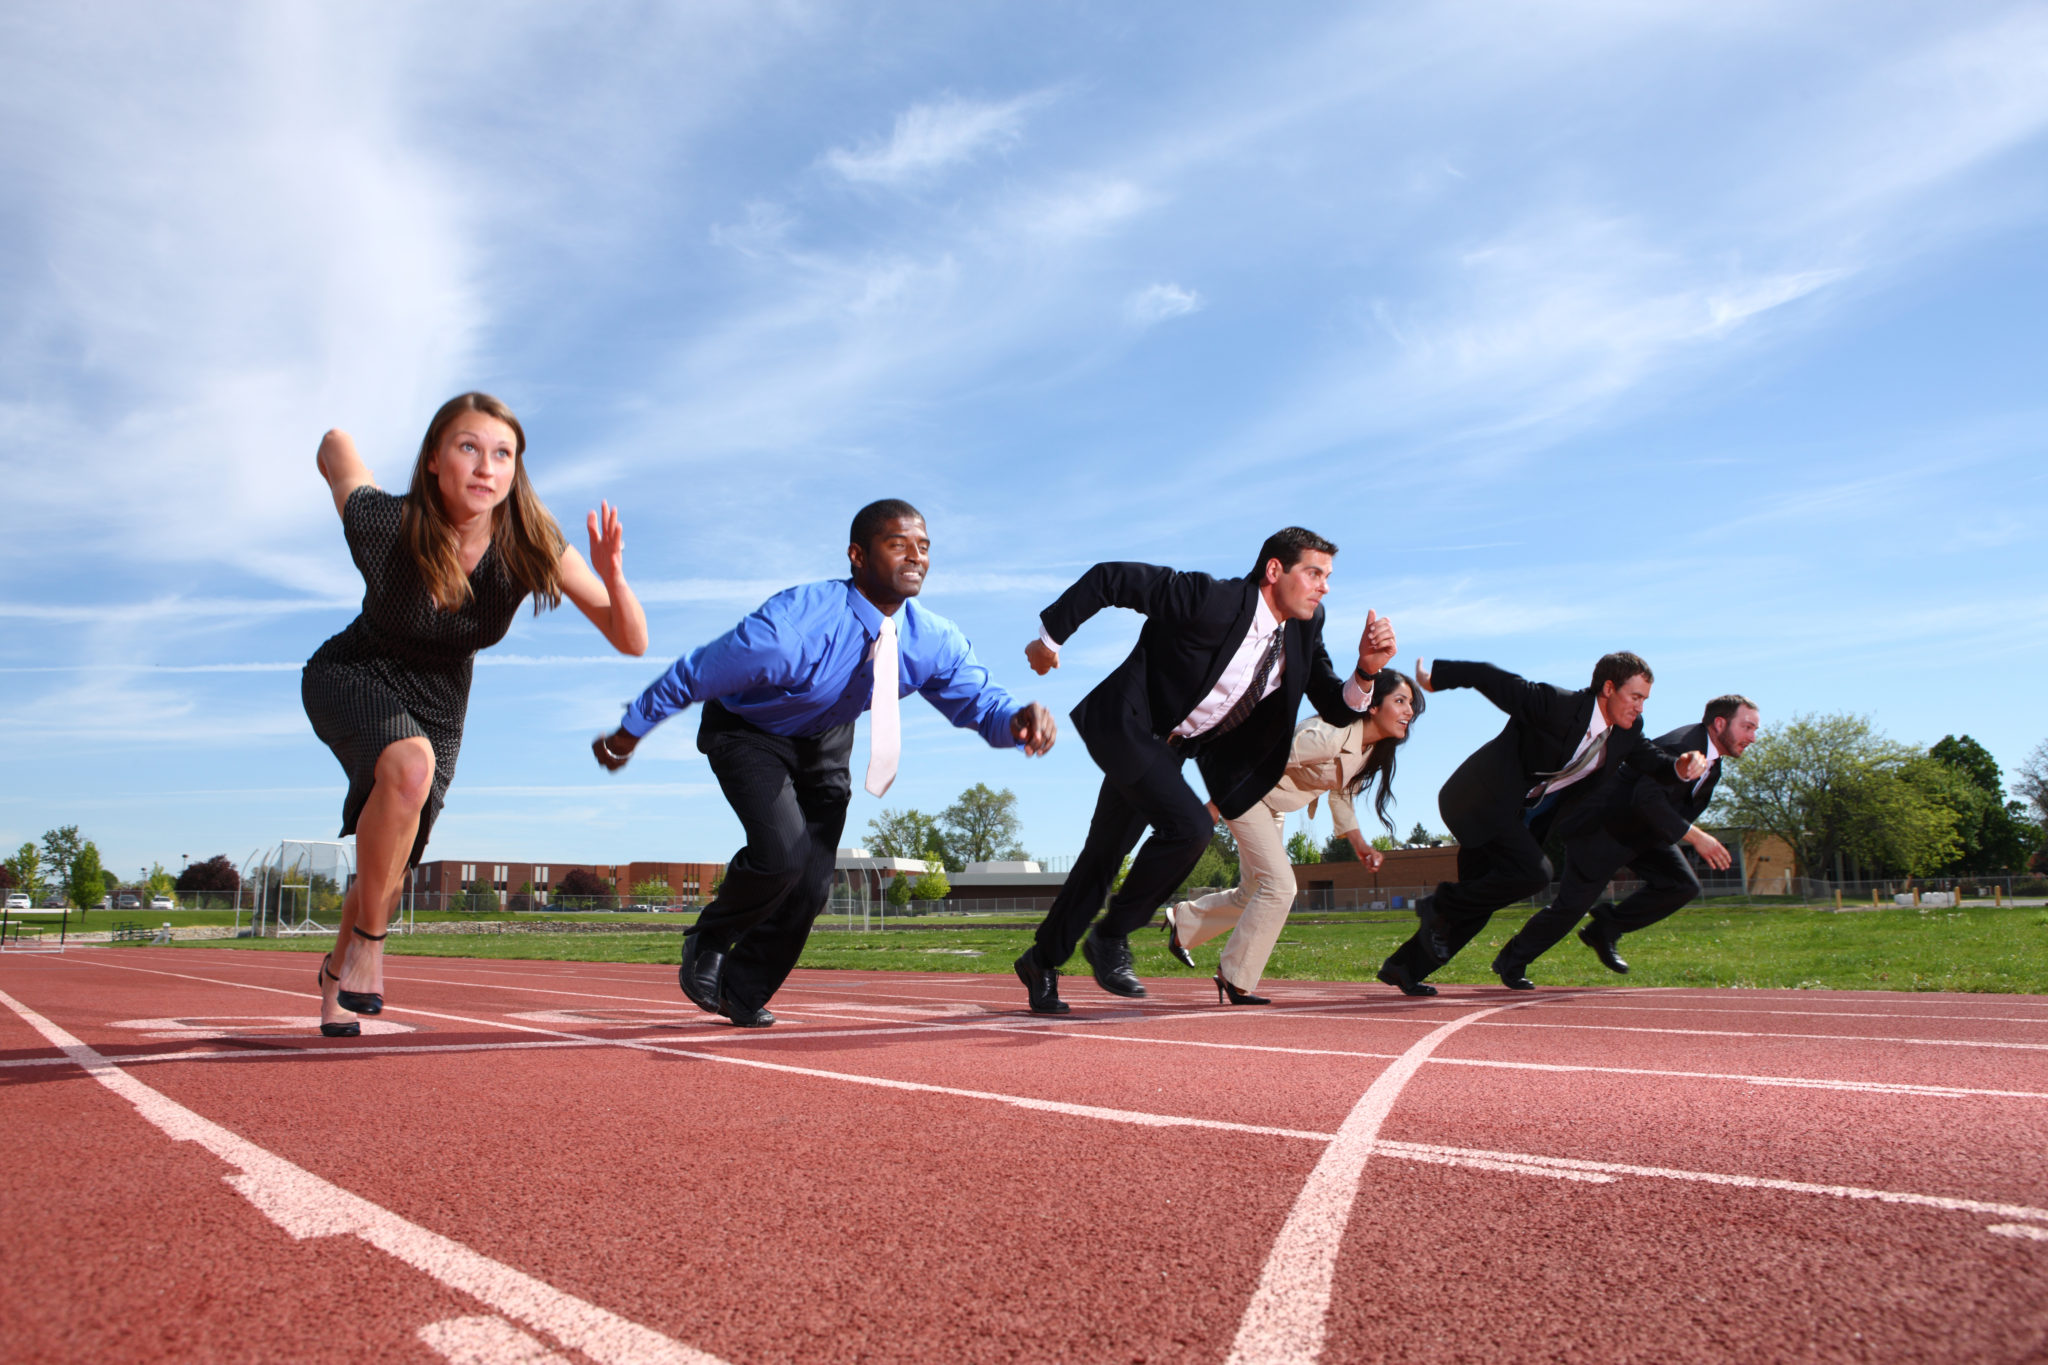 Business people starting a running race